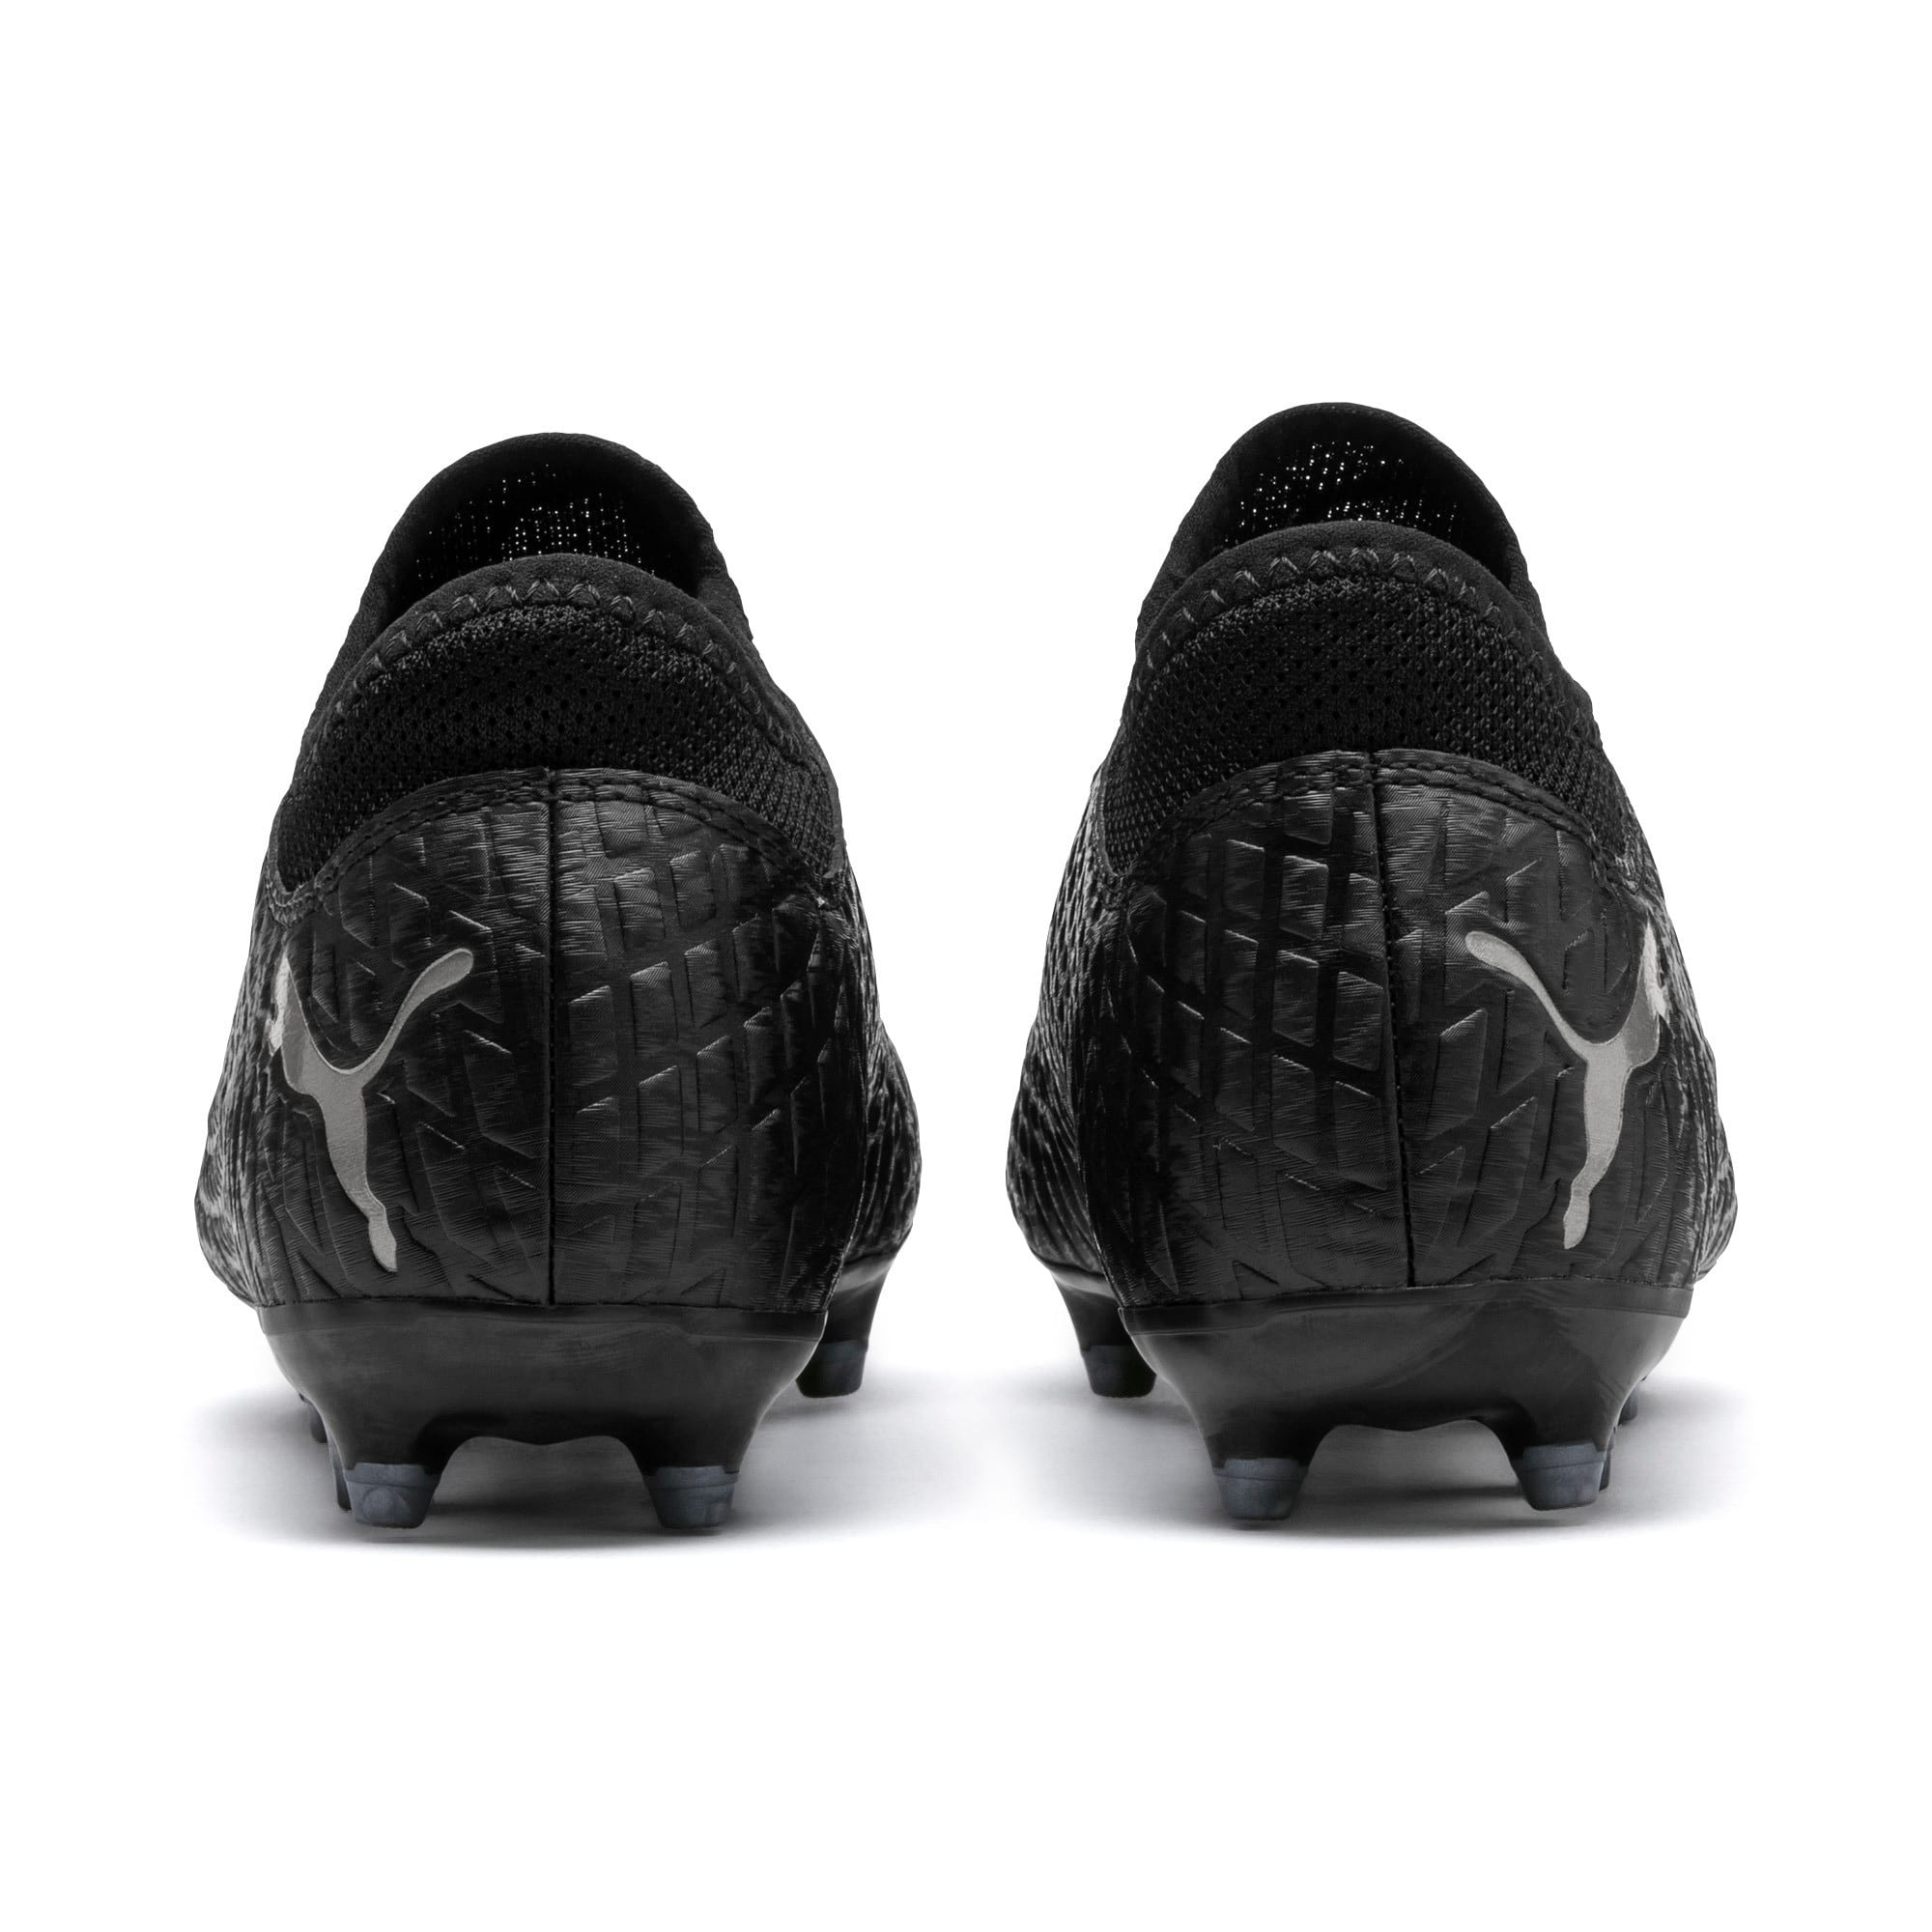 Thumbnail 3 of FUTURE 4.4 FG/AG Youth Fußballschuhe, Black-Black-Puma Aged Silver, medium